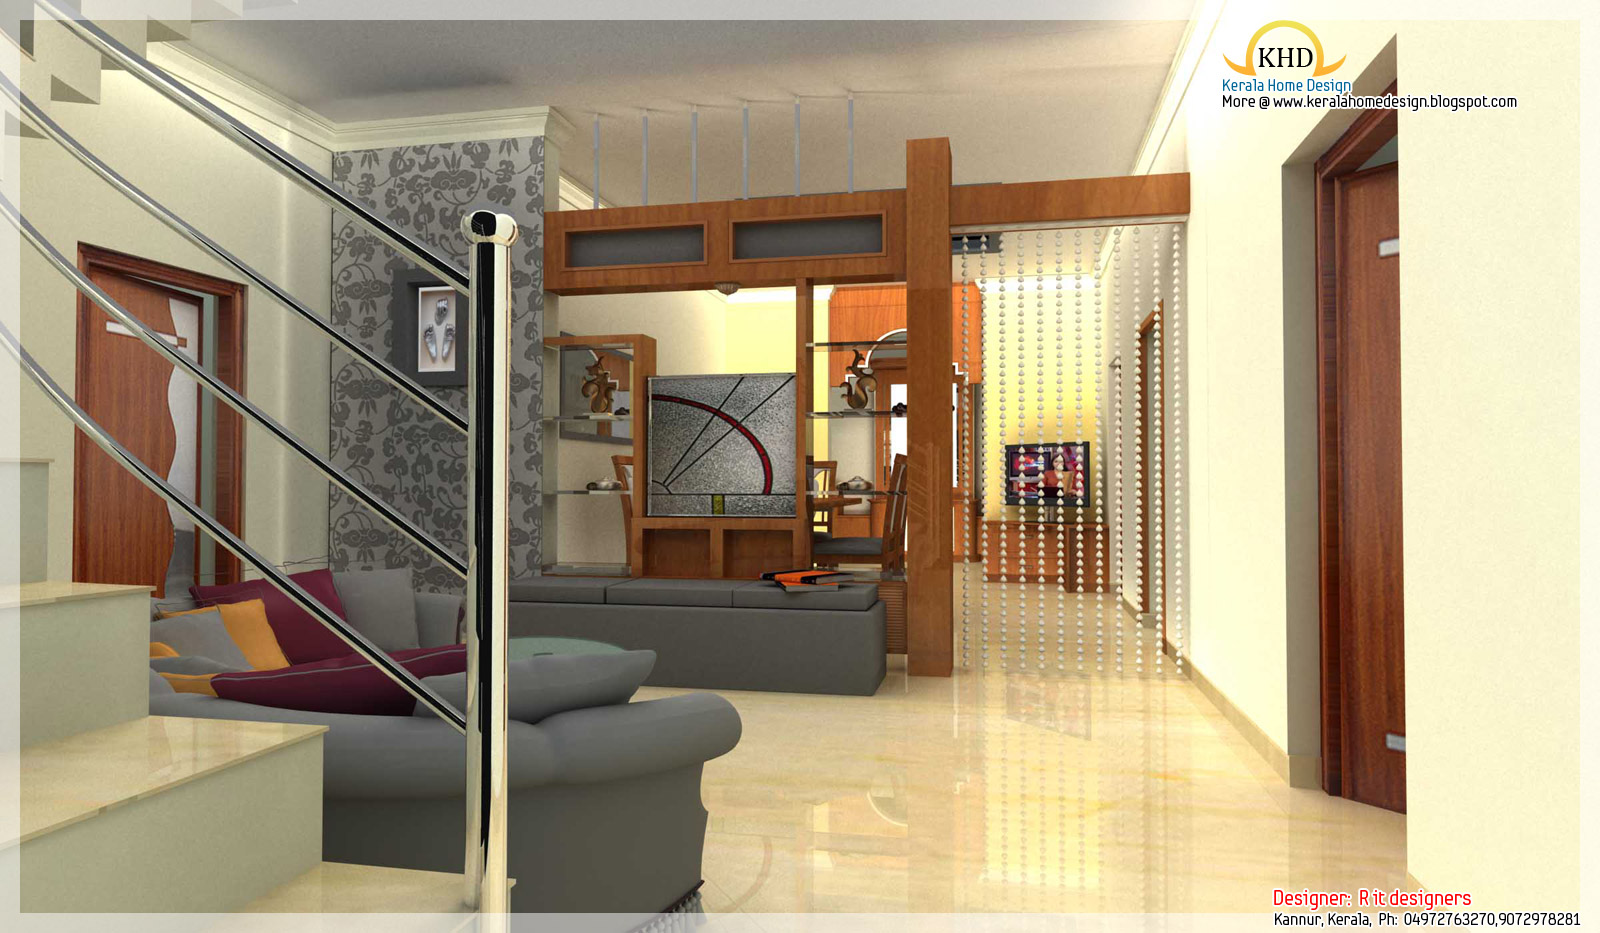 Interior design idea renderings kerala home design and for New model house interior design